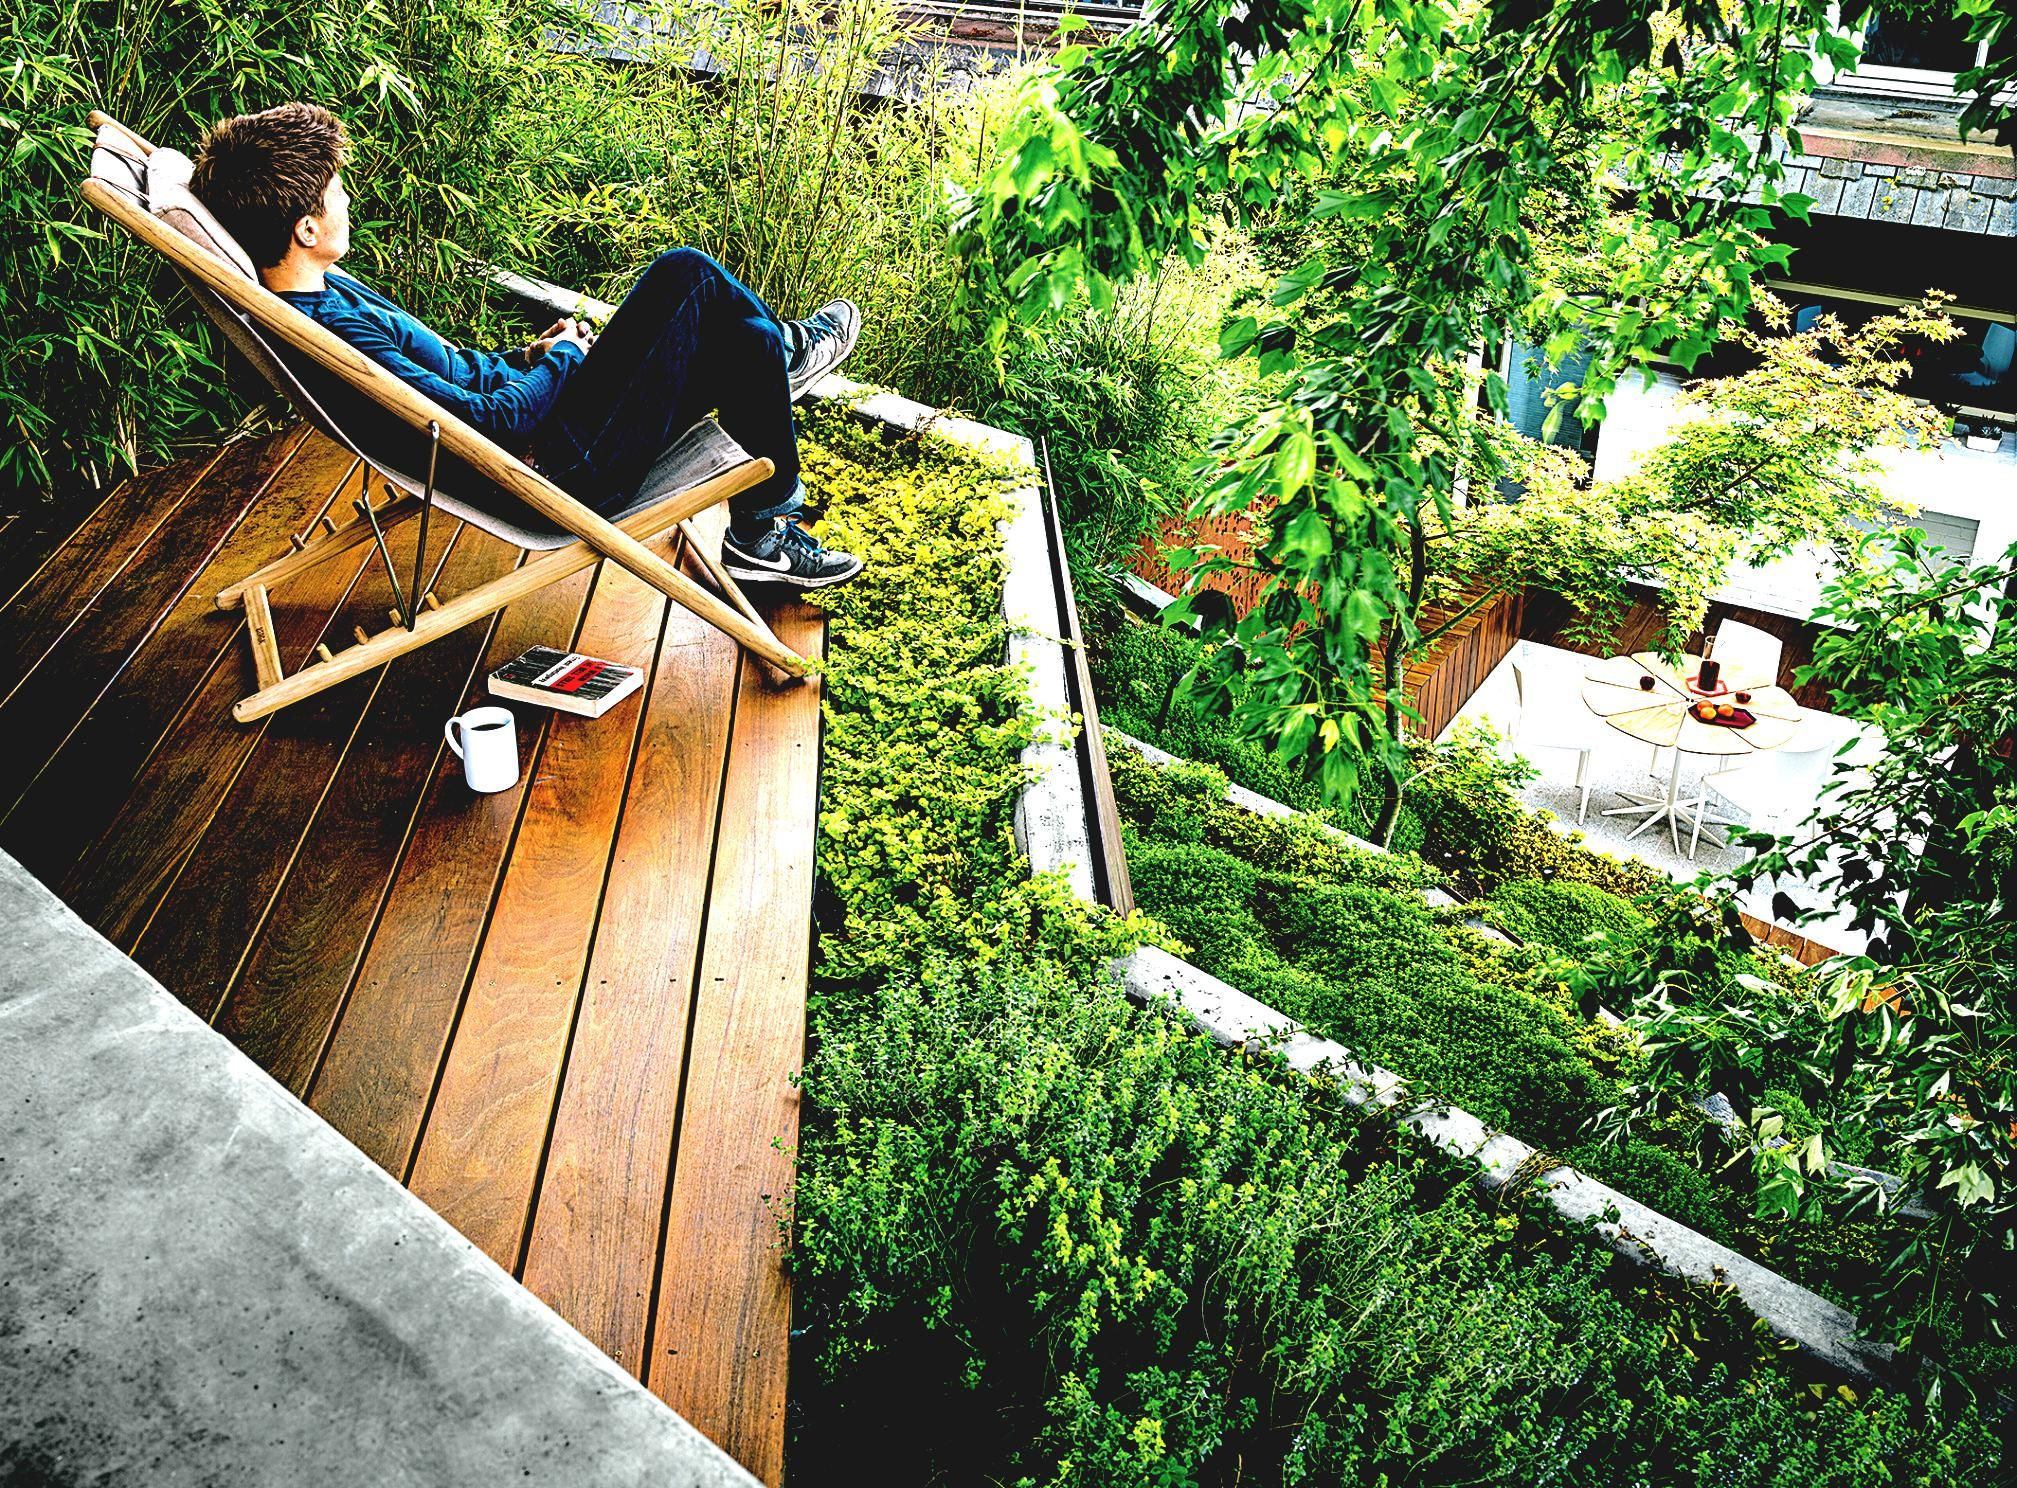 Landscape Ideas For Steep Backyard Hill The Garden ... on Steep Sloping Garden Ideas id=27130